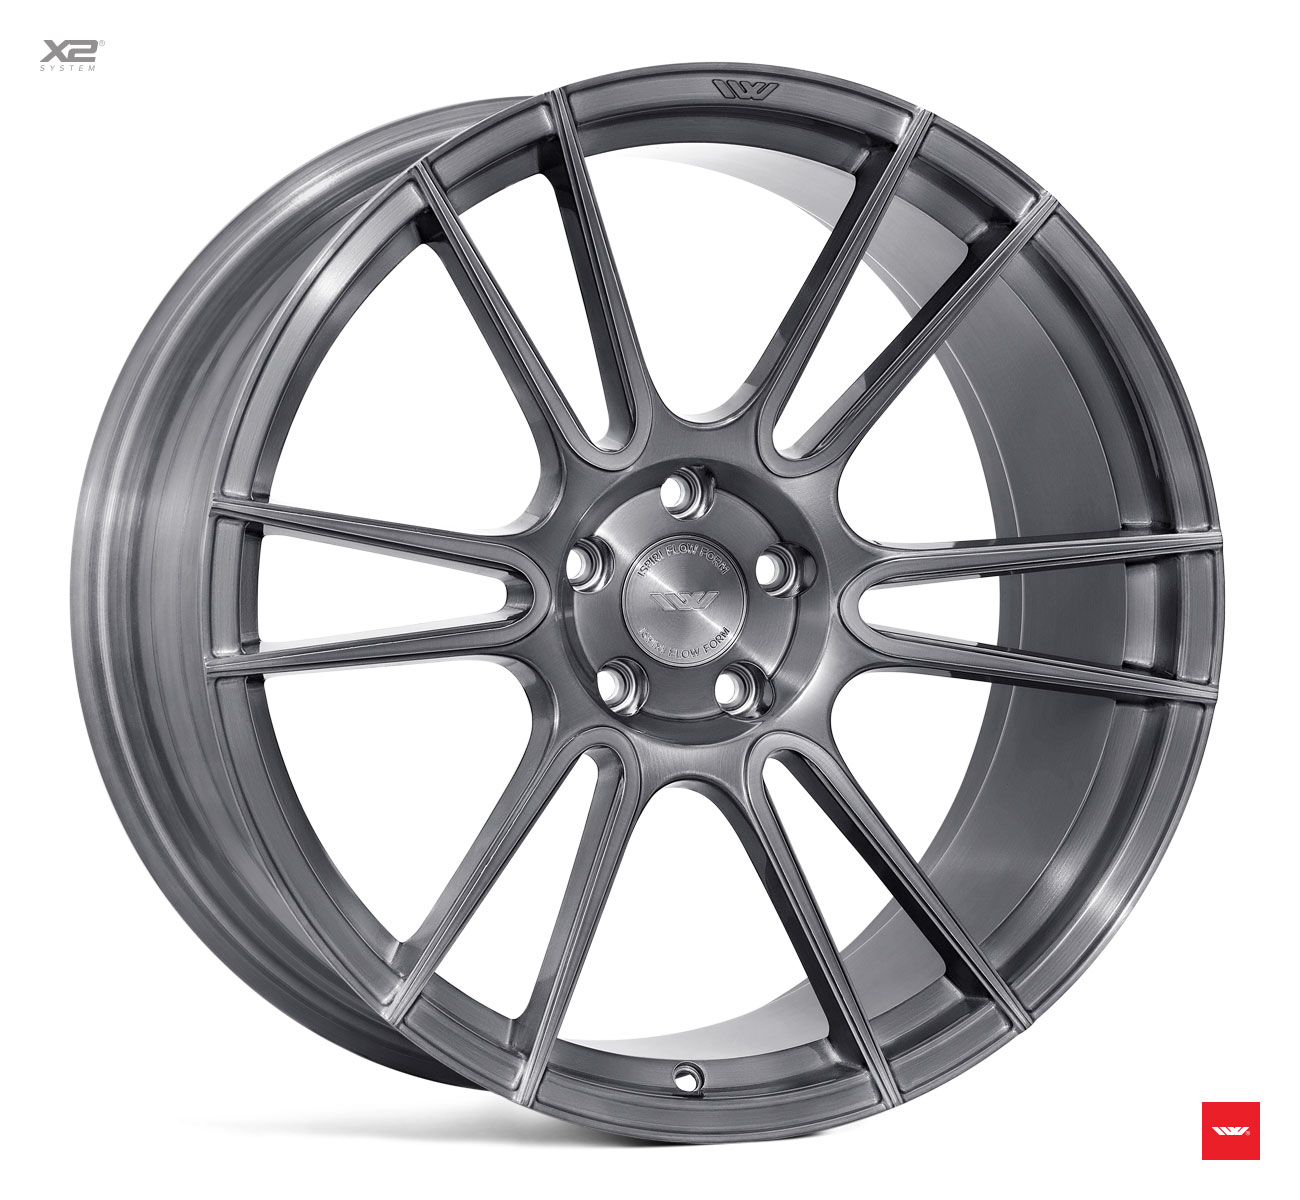 "NEW 20"" ISPIRI FFR7 TWIN CURVED 6 SPOKE ALLOY WHEELS IN FULL BRUSHED CARBON TITANIUM, WIDER 10"" REAR 5x120"